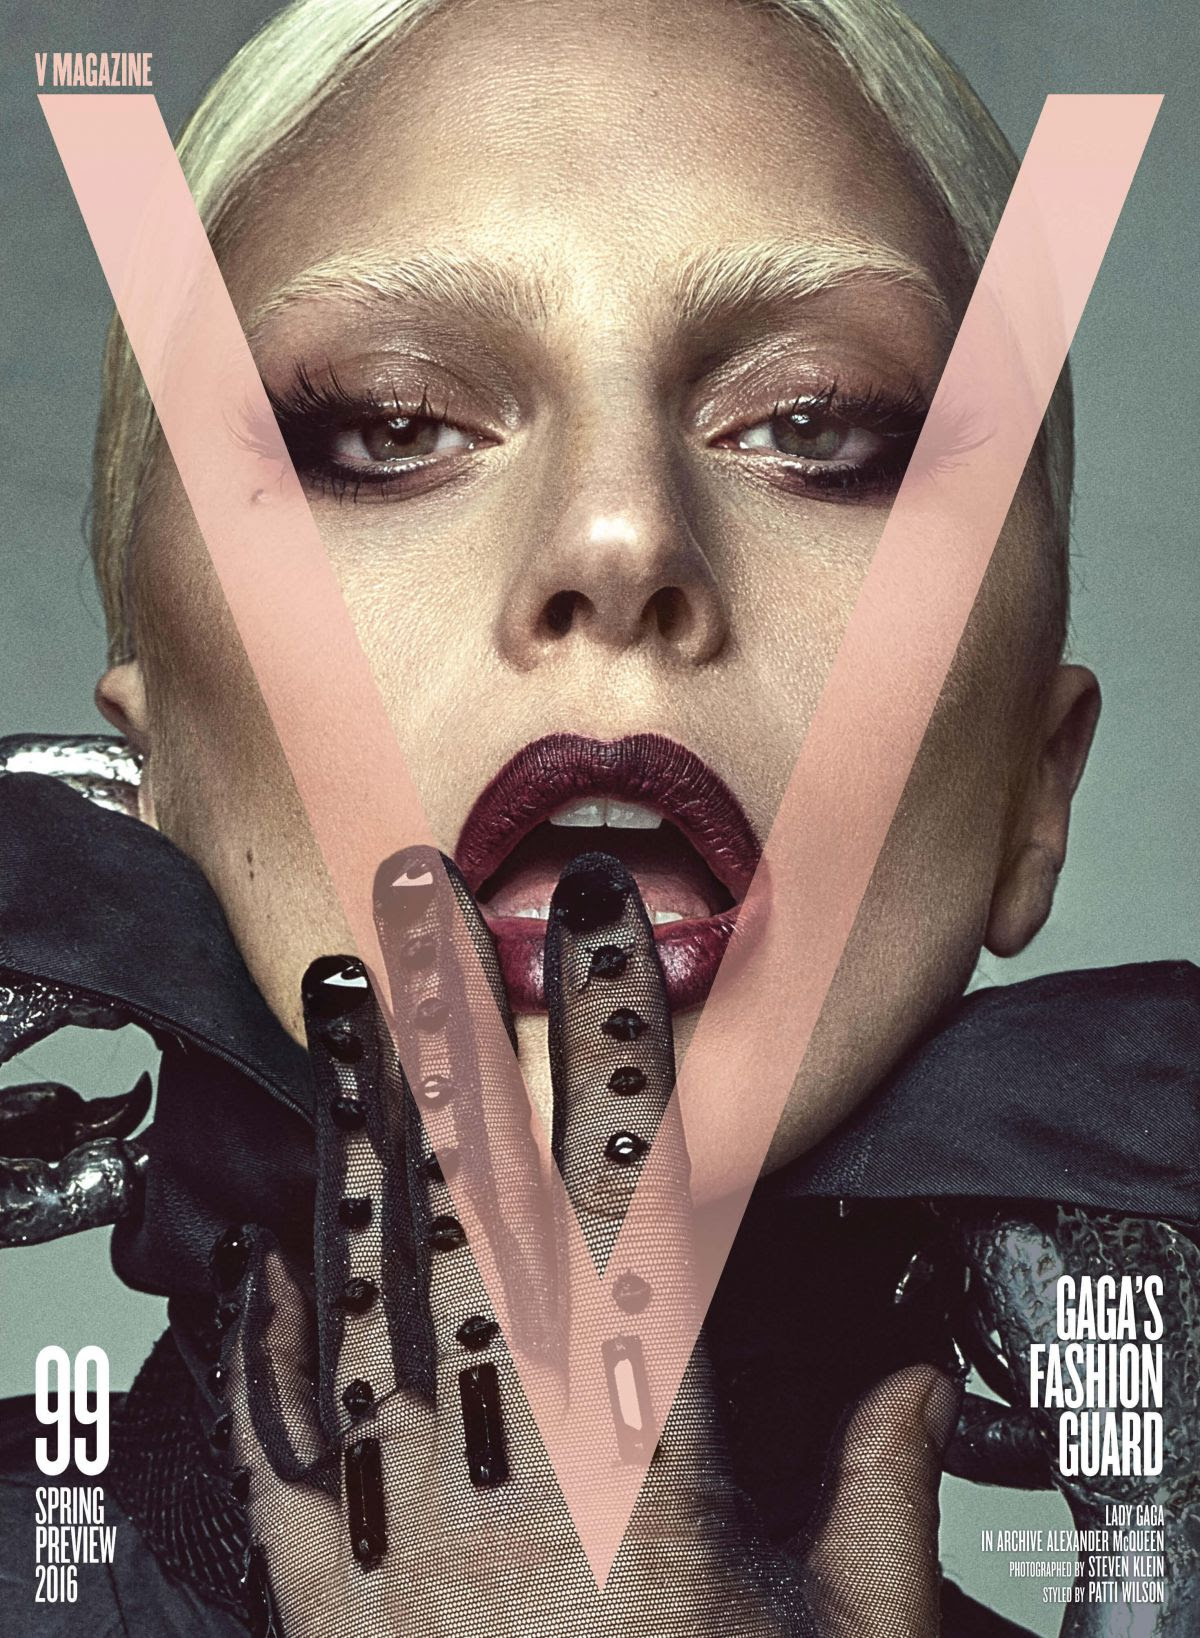 LADY GAGA in V Magazine, Issue #99